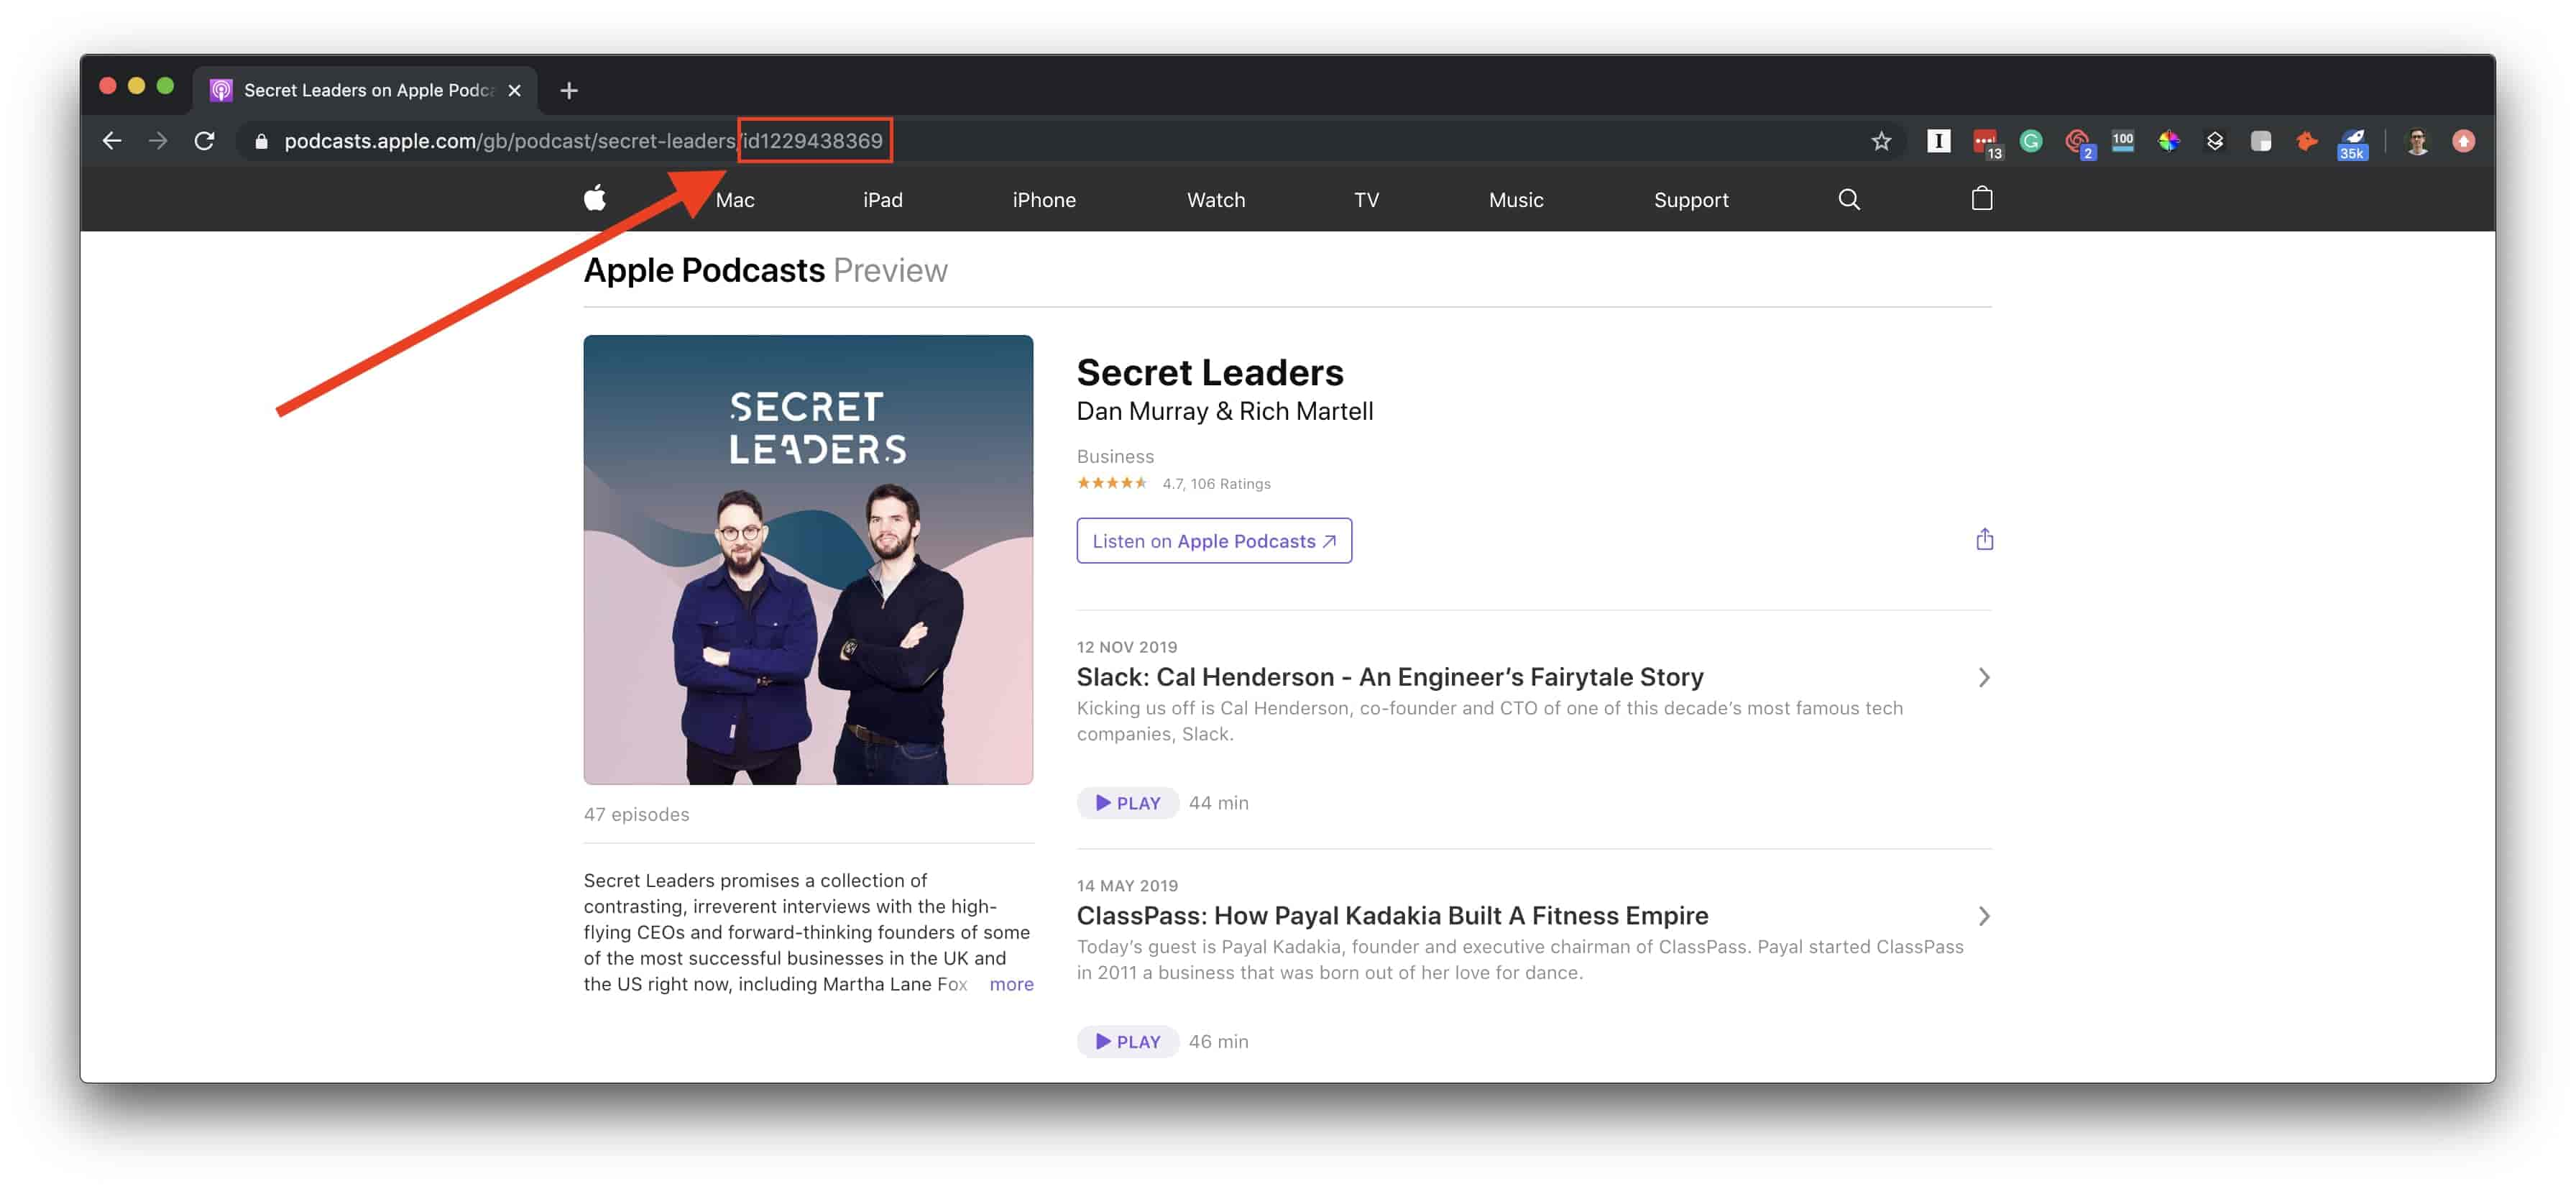 How to find your Apple Podcasts id